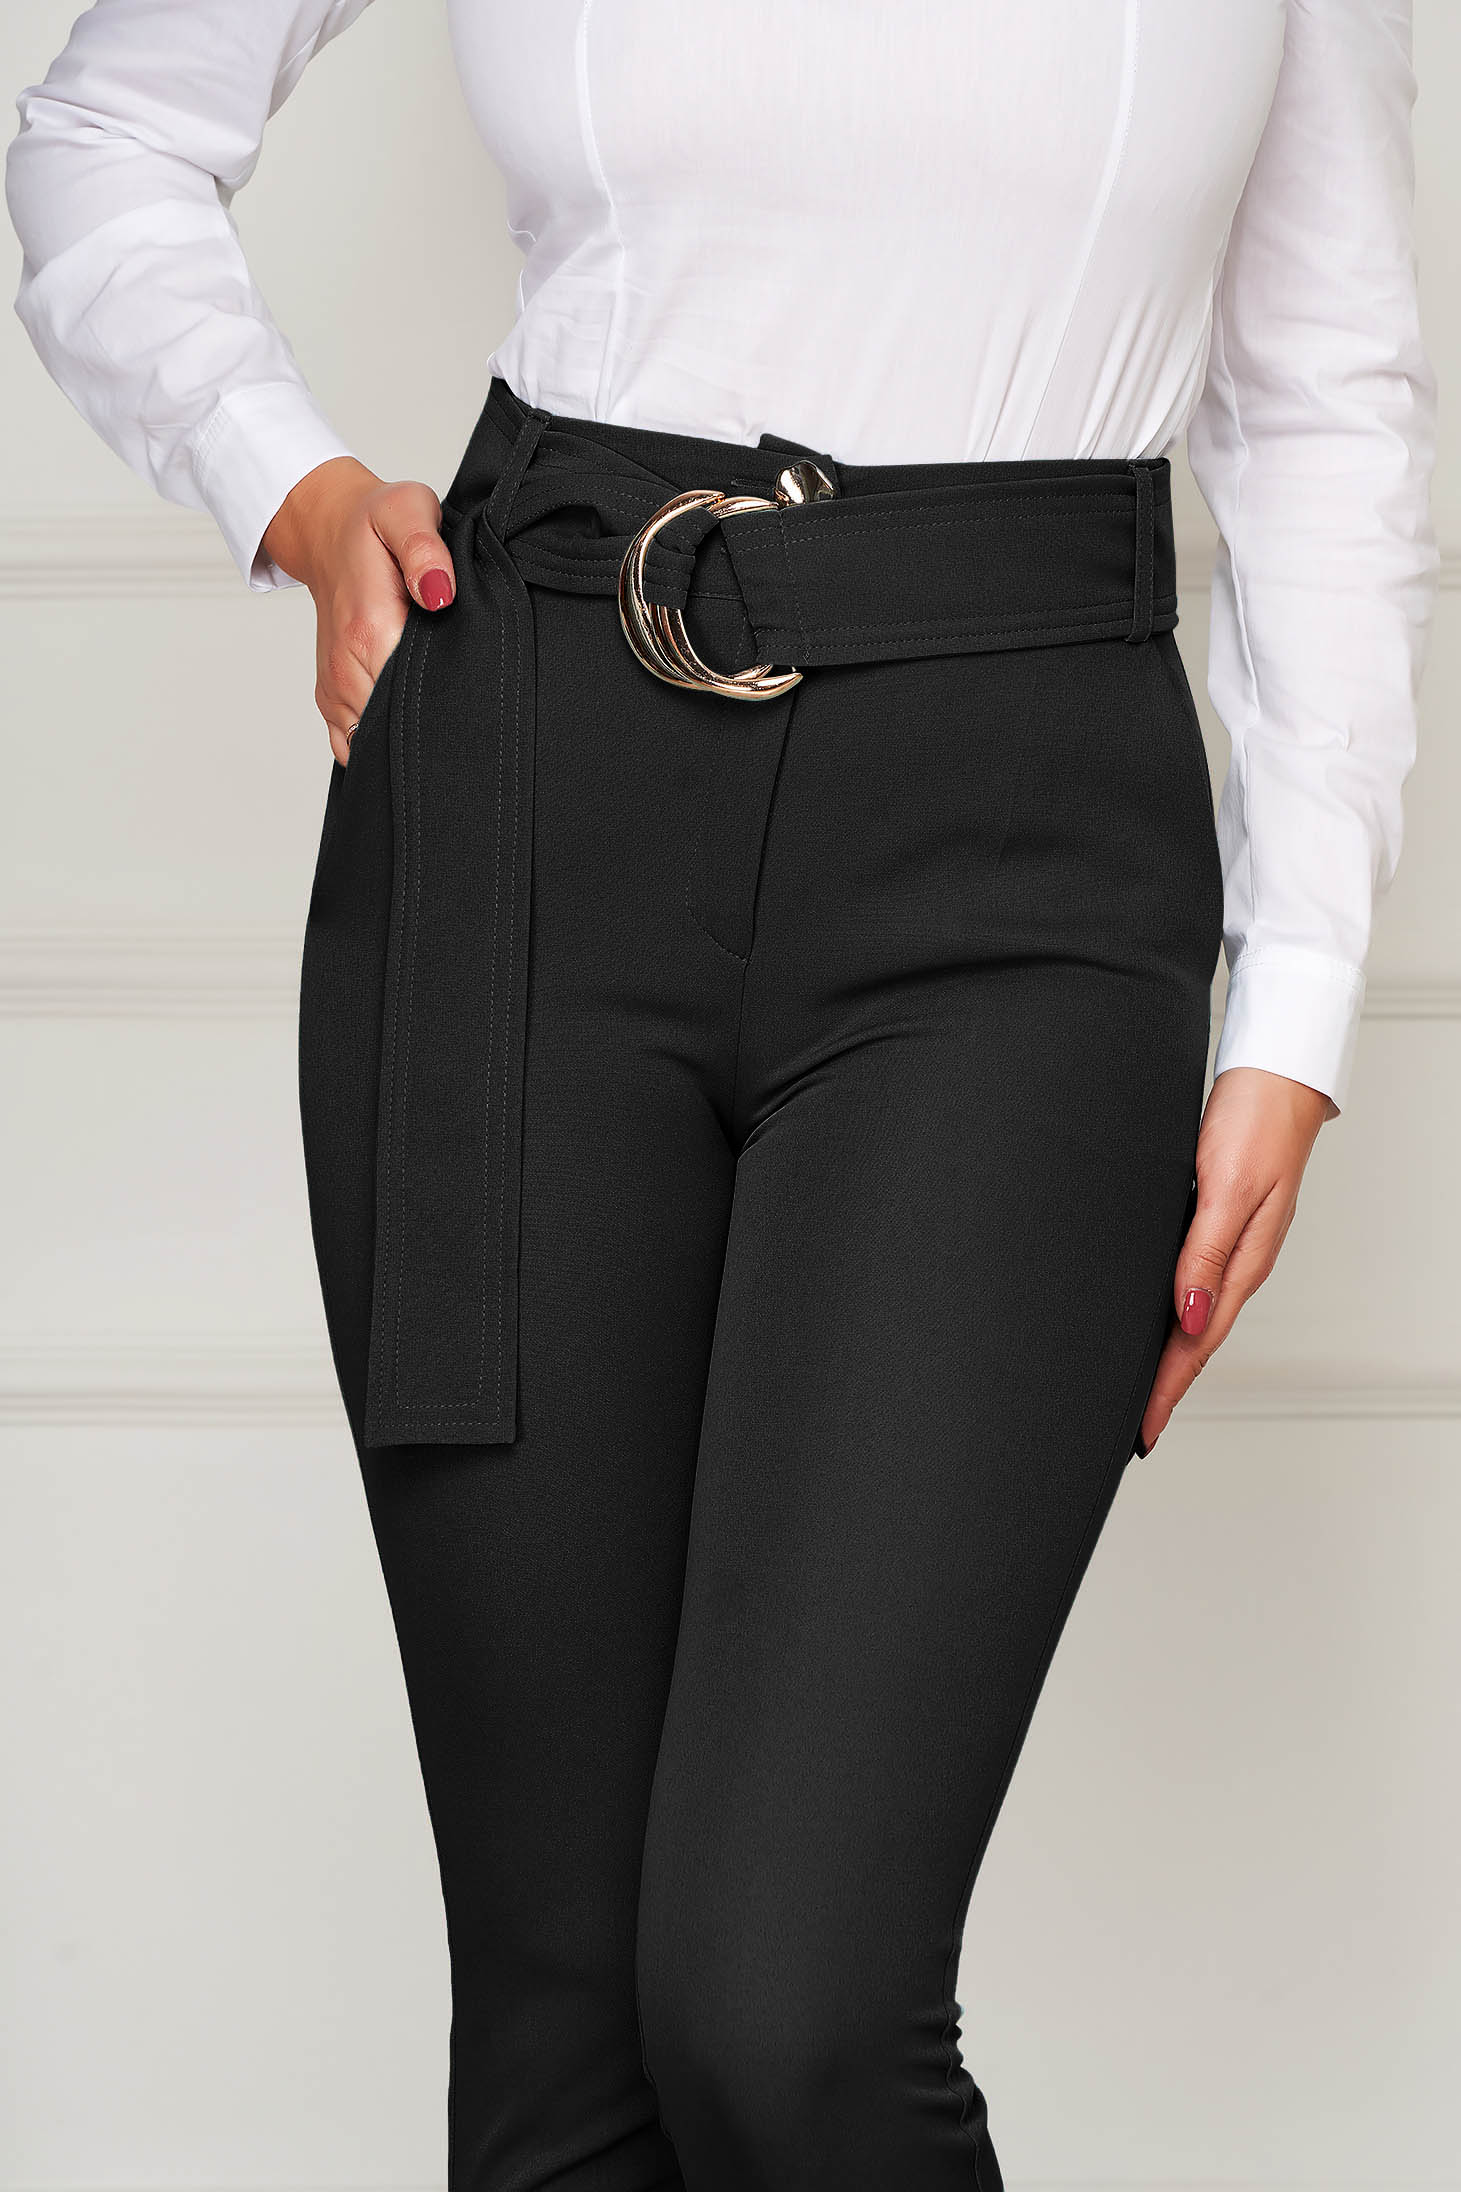 Trousers black elegant conical high waisted slightly elastic fabric